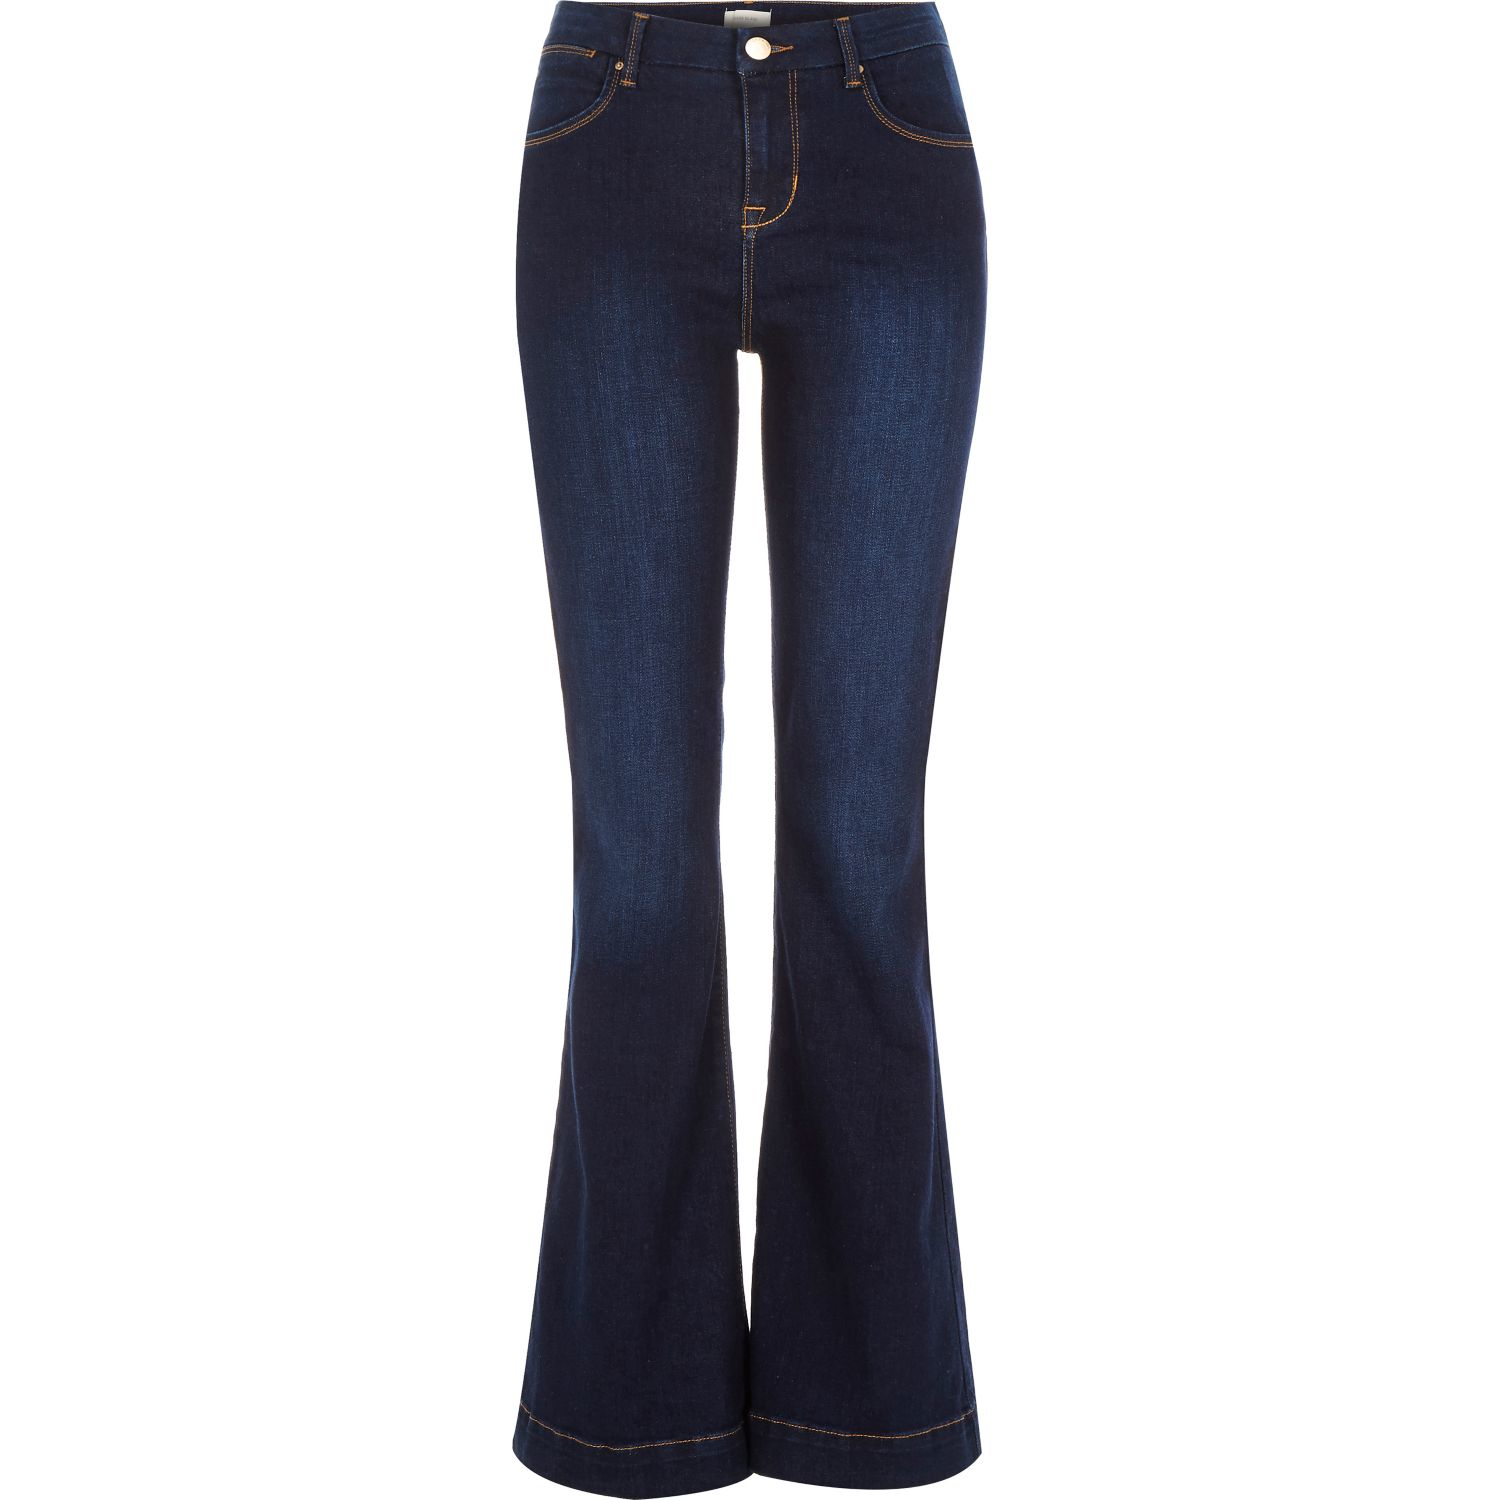 River island Dark Wash Suzie Flare Jeans in Blue | Lyst